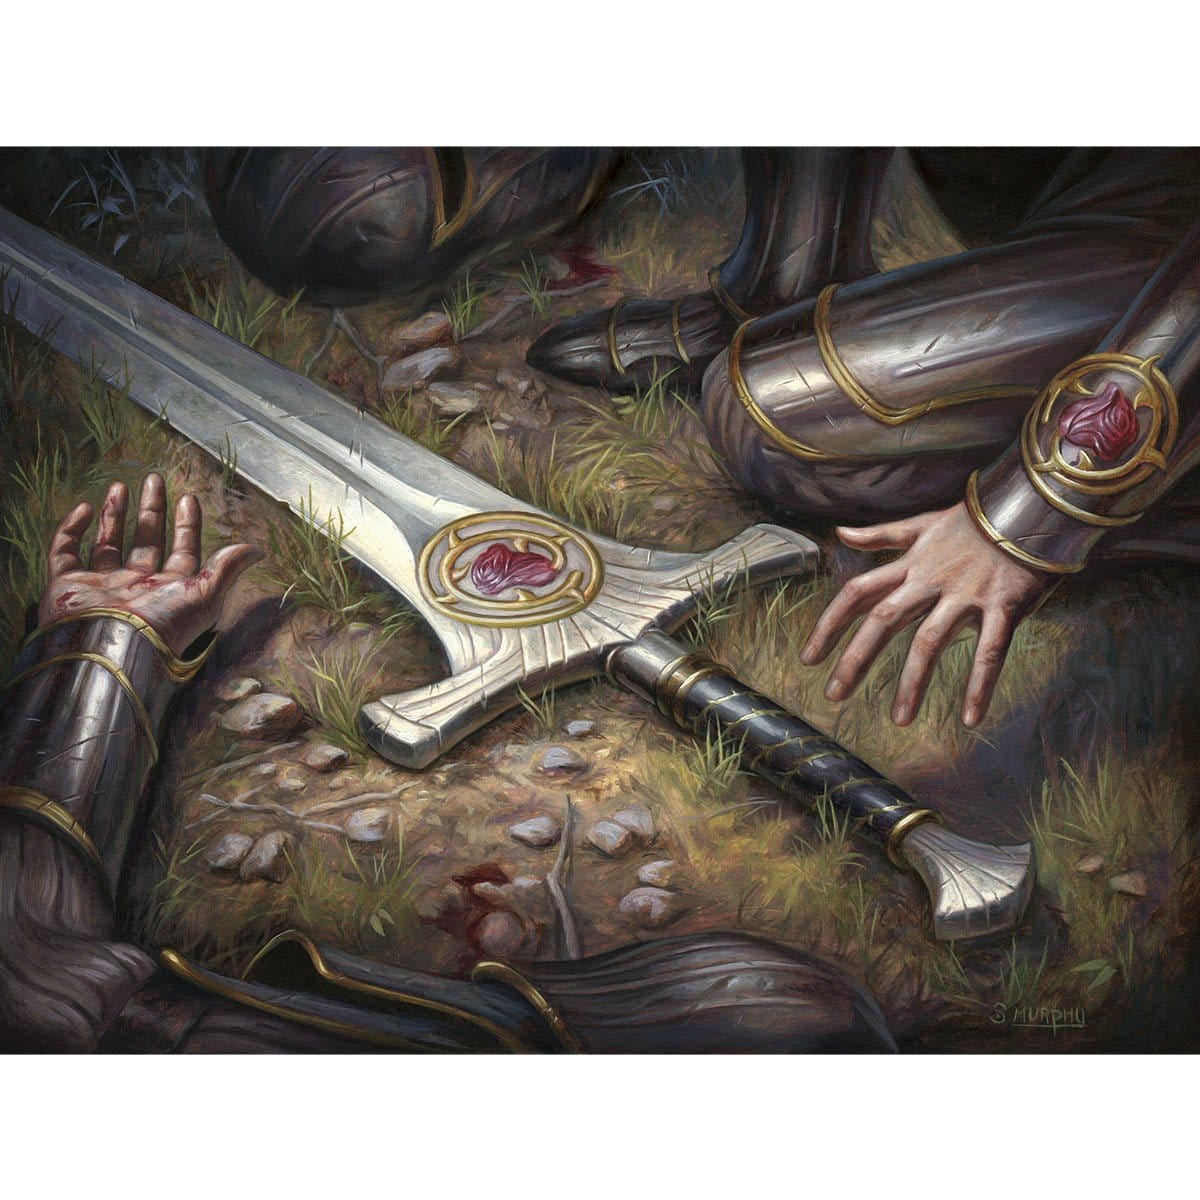 Forebear's Blade Print - Print - Original Magic Art - Accessories for Magic the Gathering and other card games